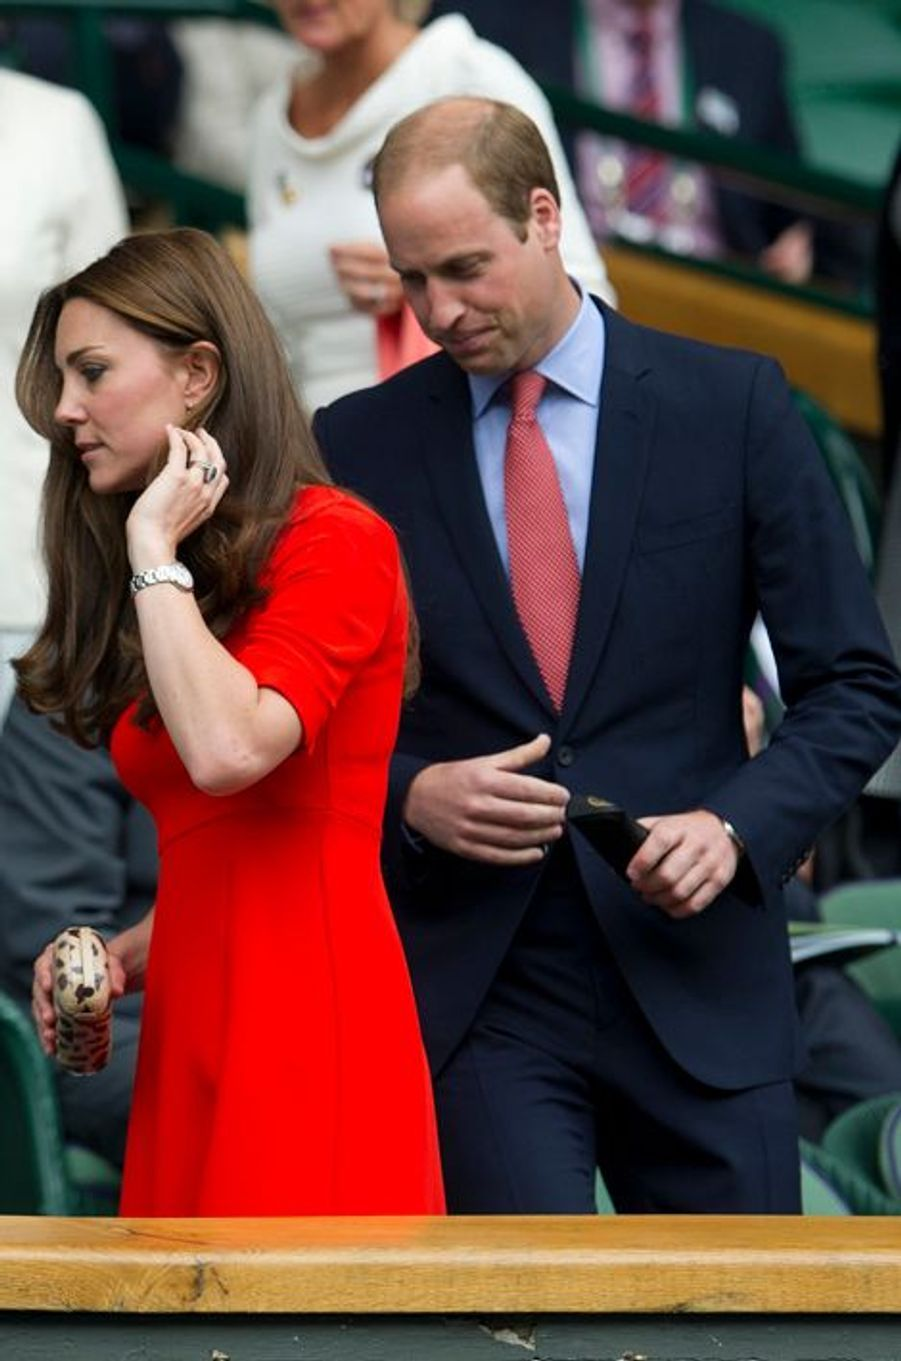 La duchesse de Cambridge Kate avec le prince William, le 8 juillet 2015